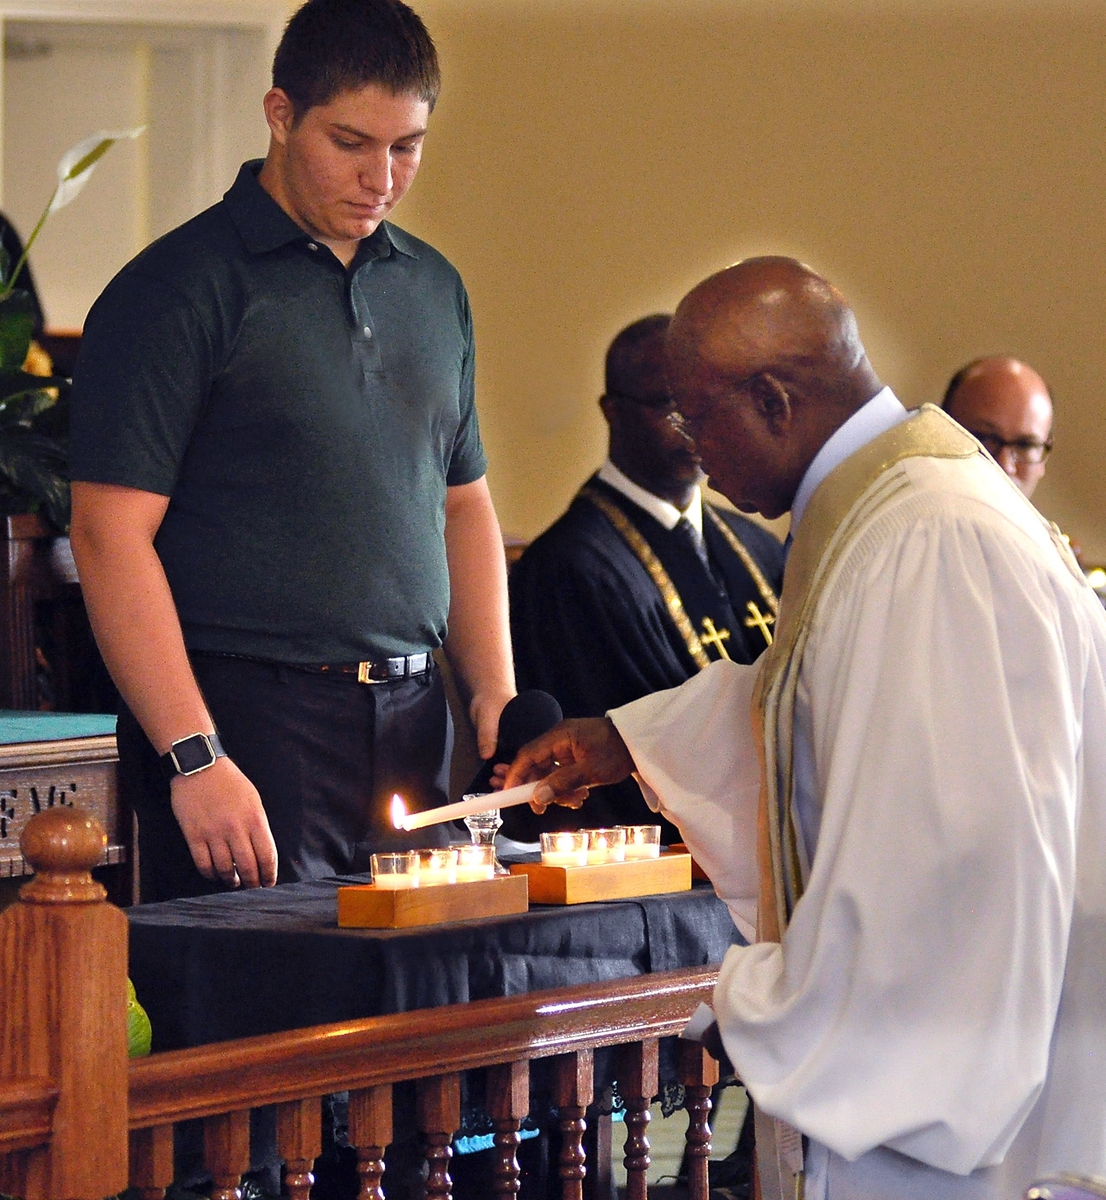 """The Rev. Arthur Cummings, right, president of the Beaufort County Ministerial Alliance, lights the last candle on June 16 in memory of the """"Emanuel Nine"""" who were murdered two years ago while attending Emanuel AME Church in Charleston. The candles were part of the Evening of Remembrance Memorial Candlelight Service sponsored by the Unified Interfaith Community Coalition of Beaufort at Grace Chapel AME Church on Lady's Island."""